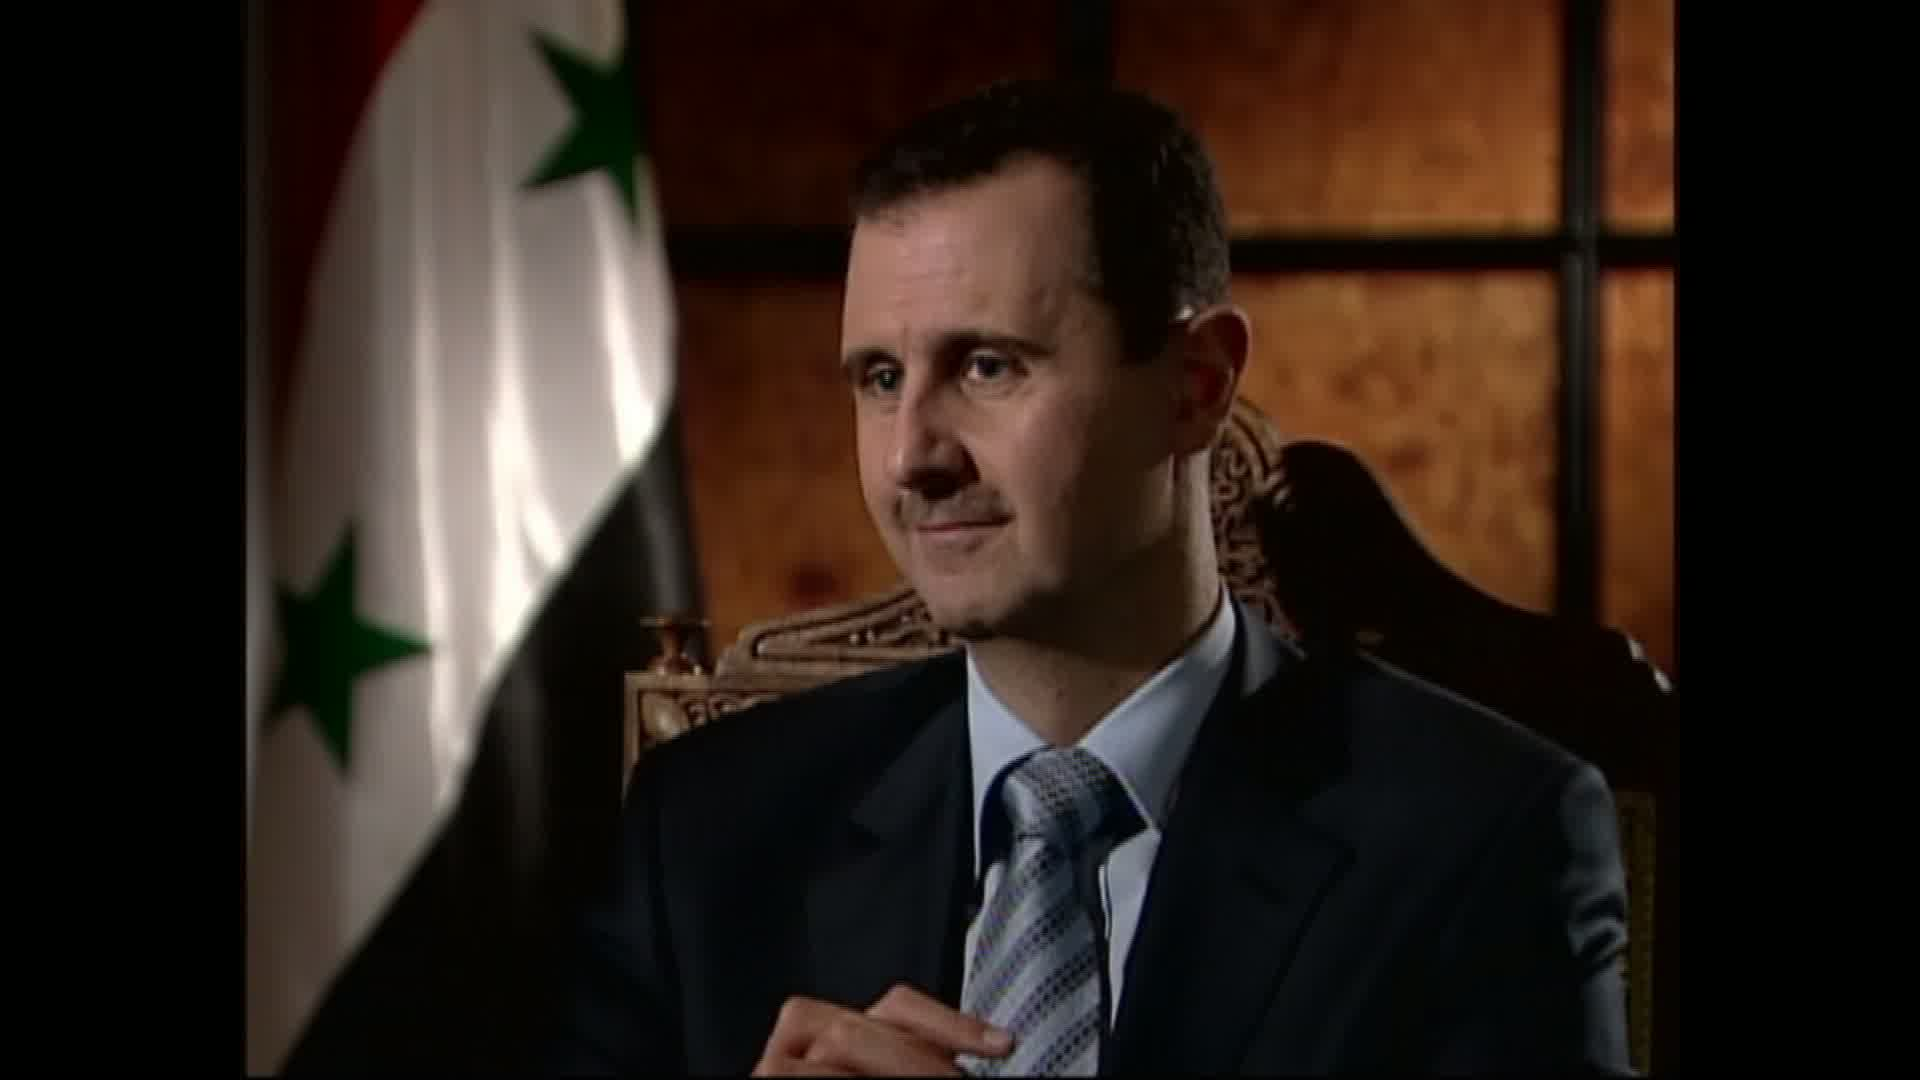 Will U.S. sanctions really hurt al-Assad?